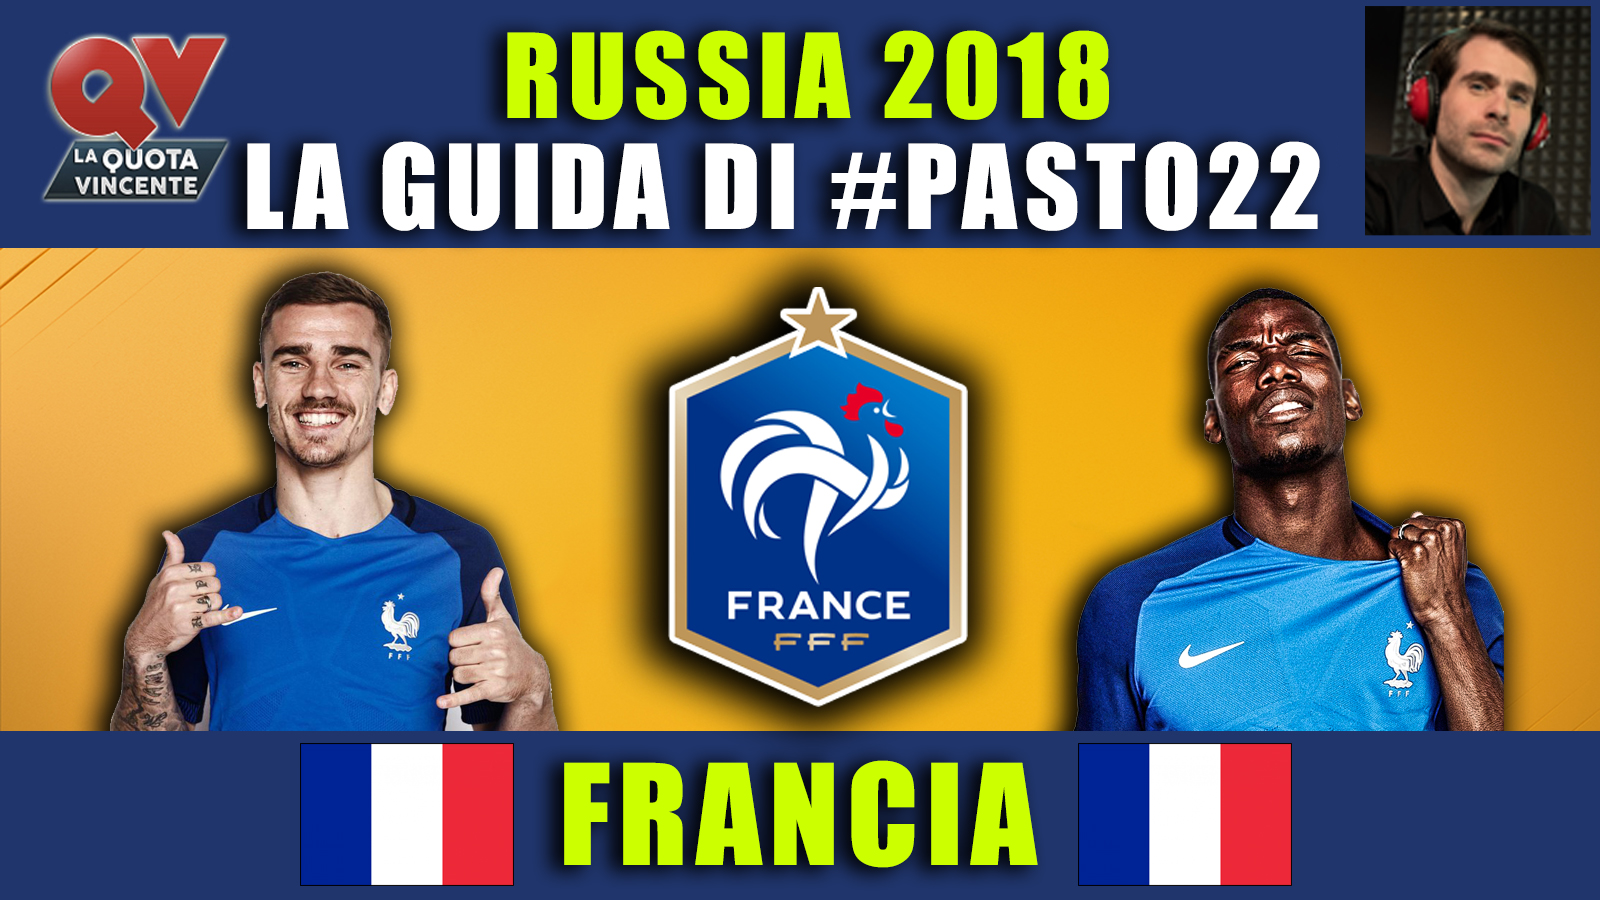 https://www.laquotavincente.it/guida-mondiali-russia-2018-francia/